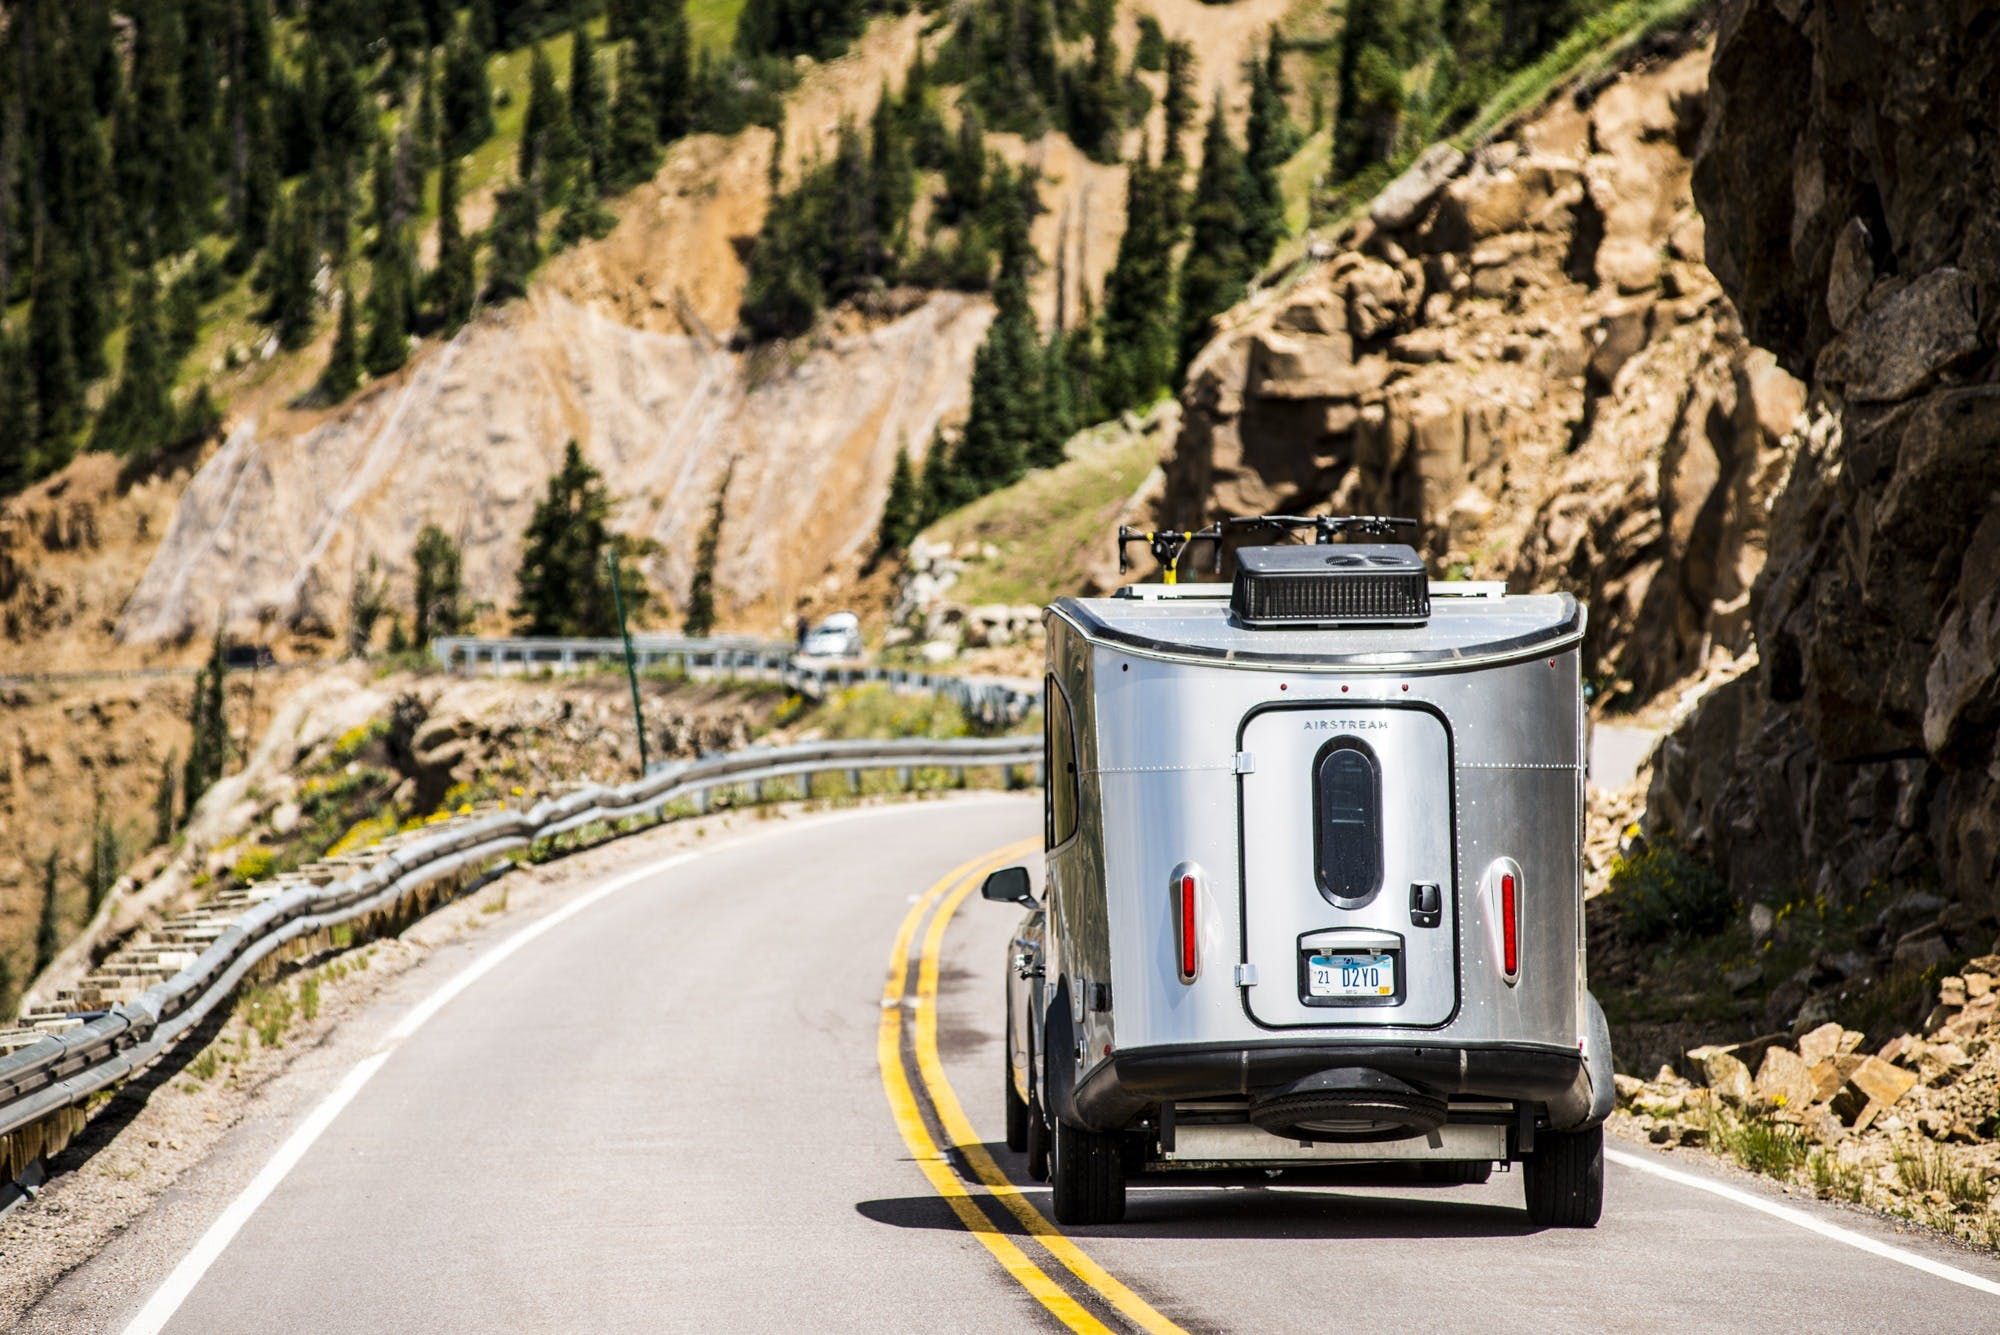 Airstream Basecamp on curvey road